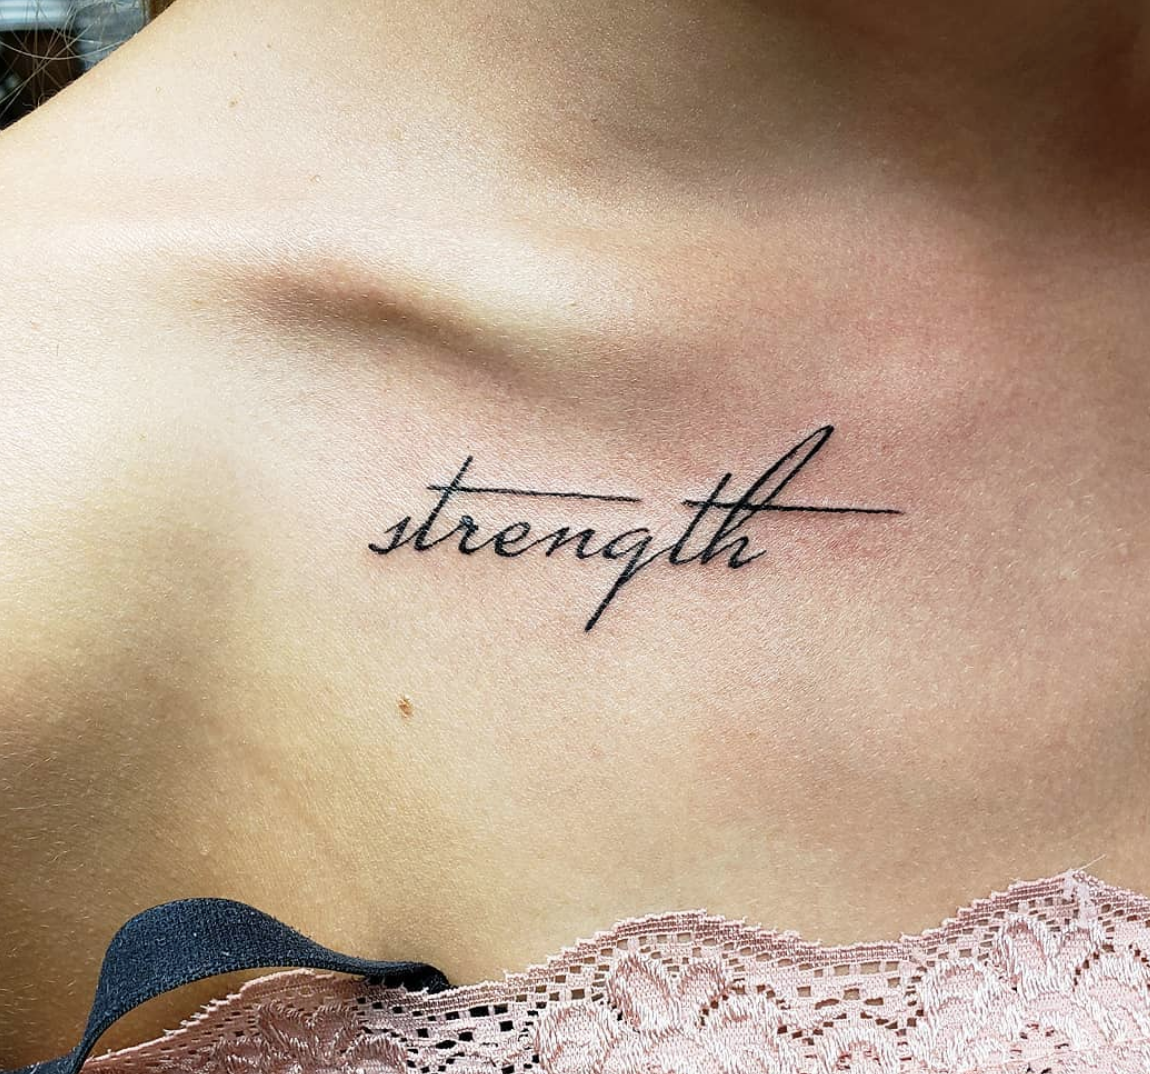 40 Inspiring Tattoo Ideas To Get After A Divorce Strong Tattoos Strength Tattoo One Word Tattoos